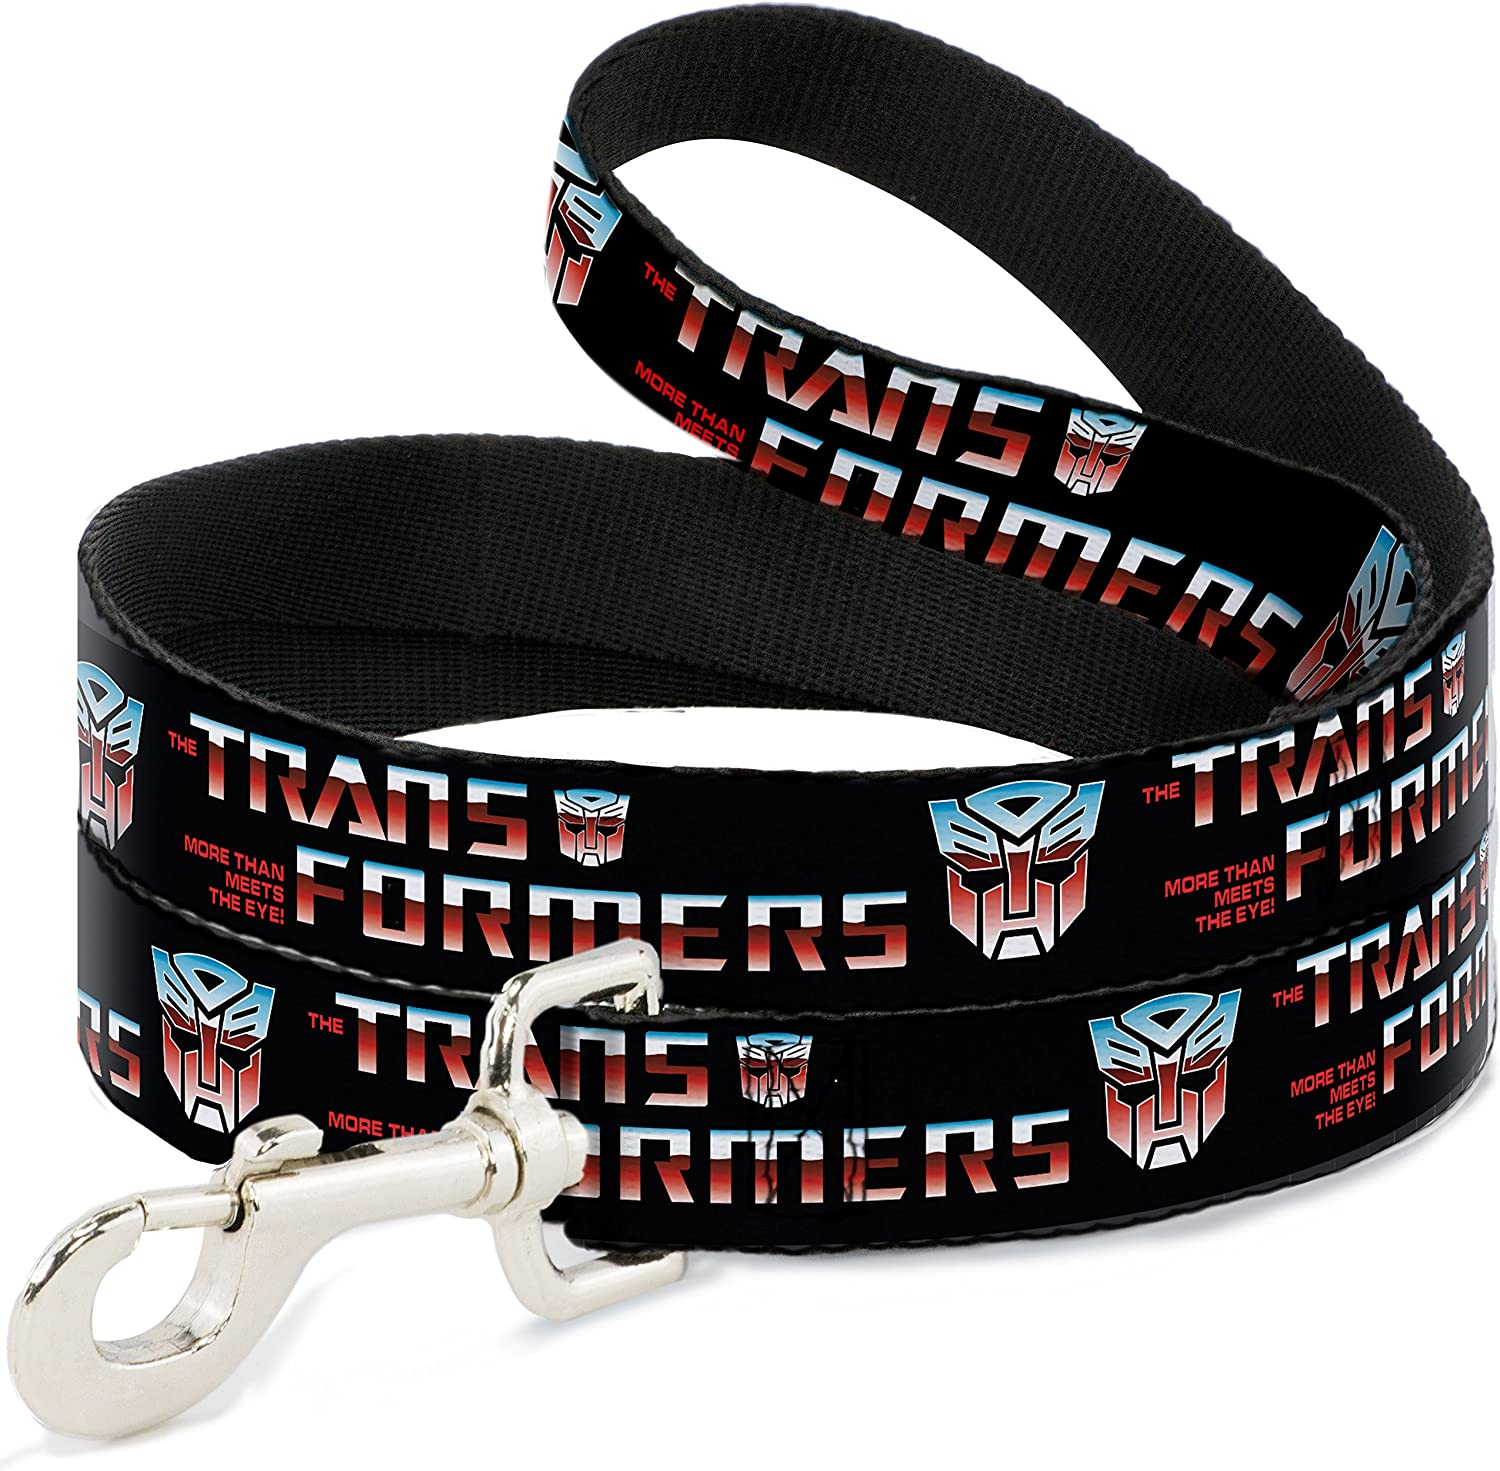 BuckleDown DLWTF013 Dog Leash, Transformers Logo Autobot Black blueeRed Fade, 4'